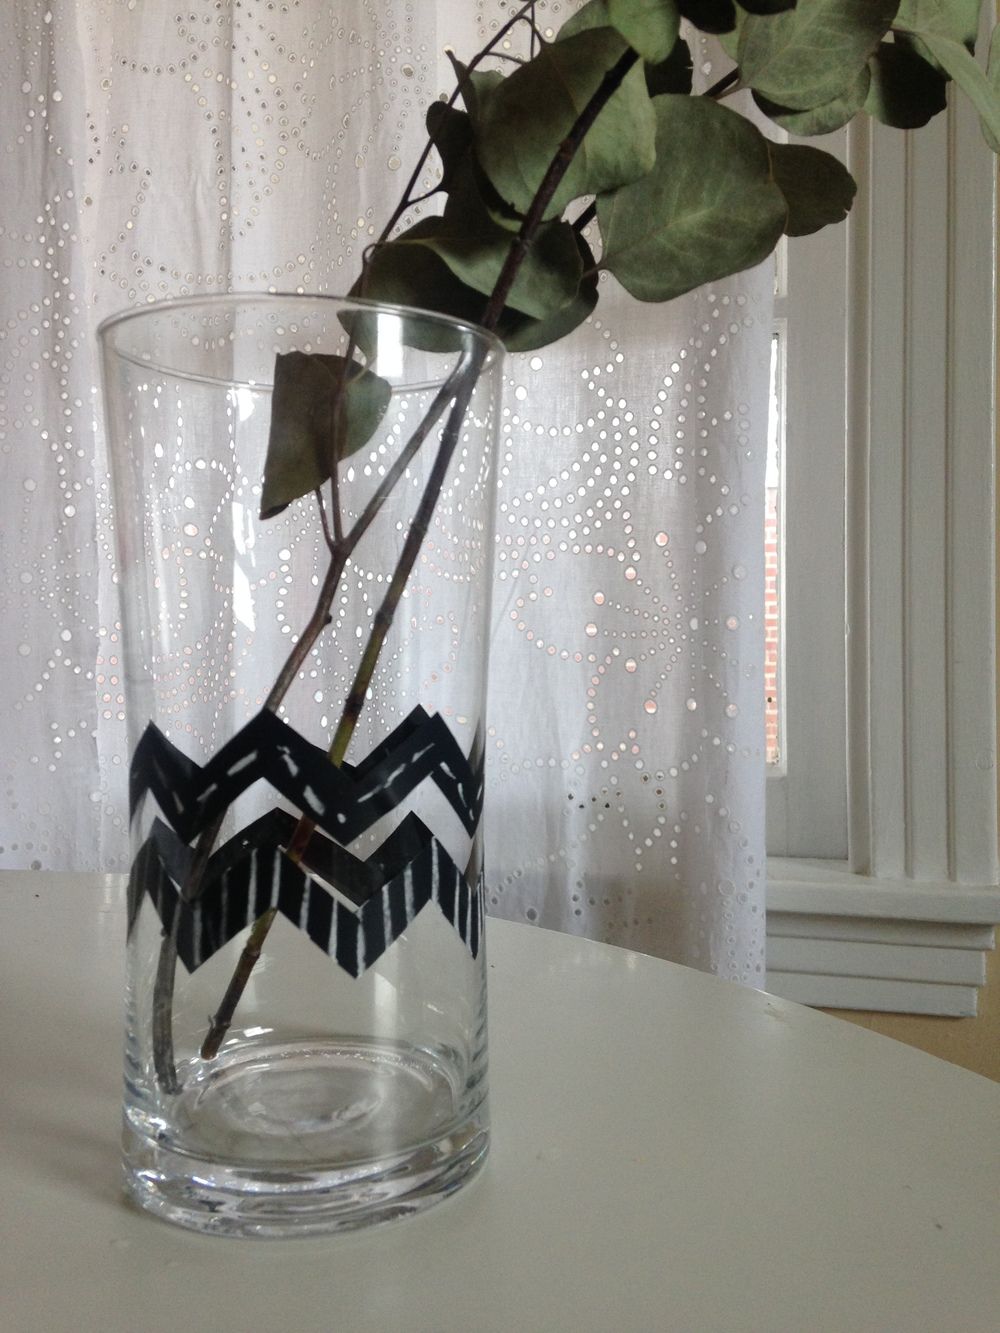 Ever need to doll up an existing vase or glass for something you're hosting? I do! You could do a million different designs using chalkboard tape. You could personalize vases with a name, note or quote. You could do a large scale design or even cut the tape in different designs. Lots of options with this one!